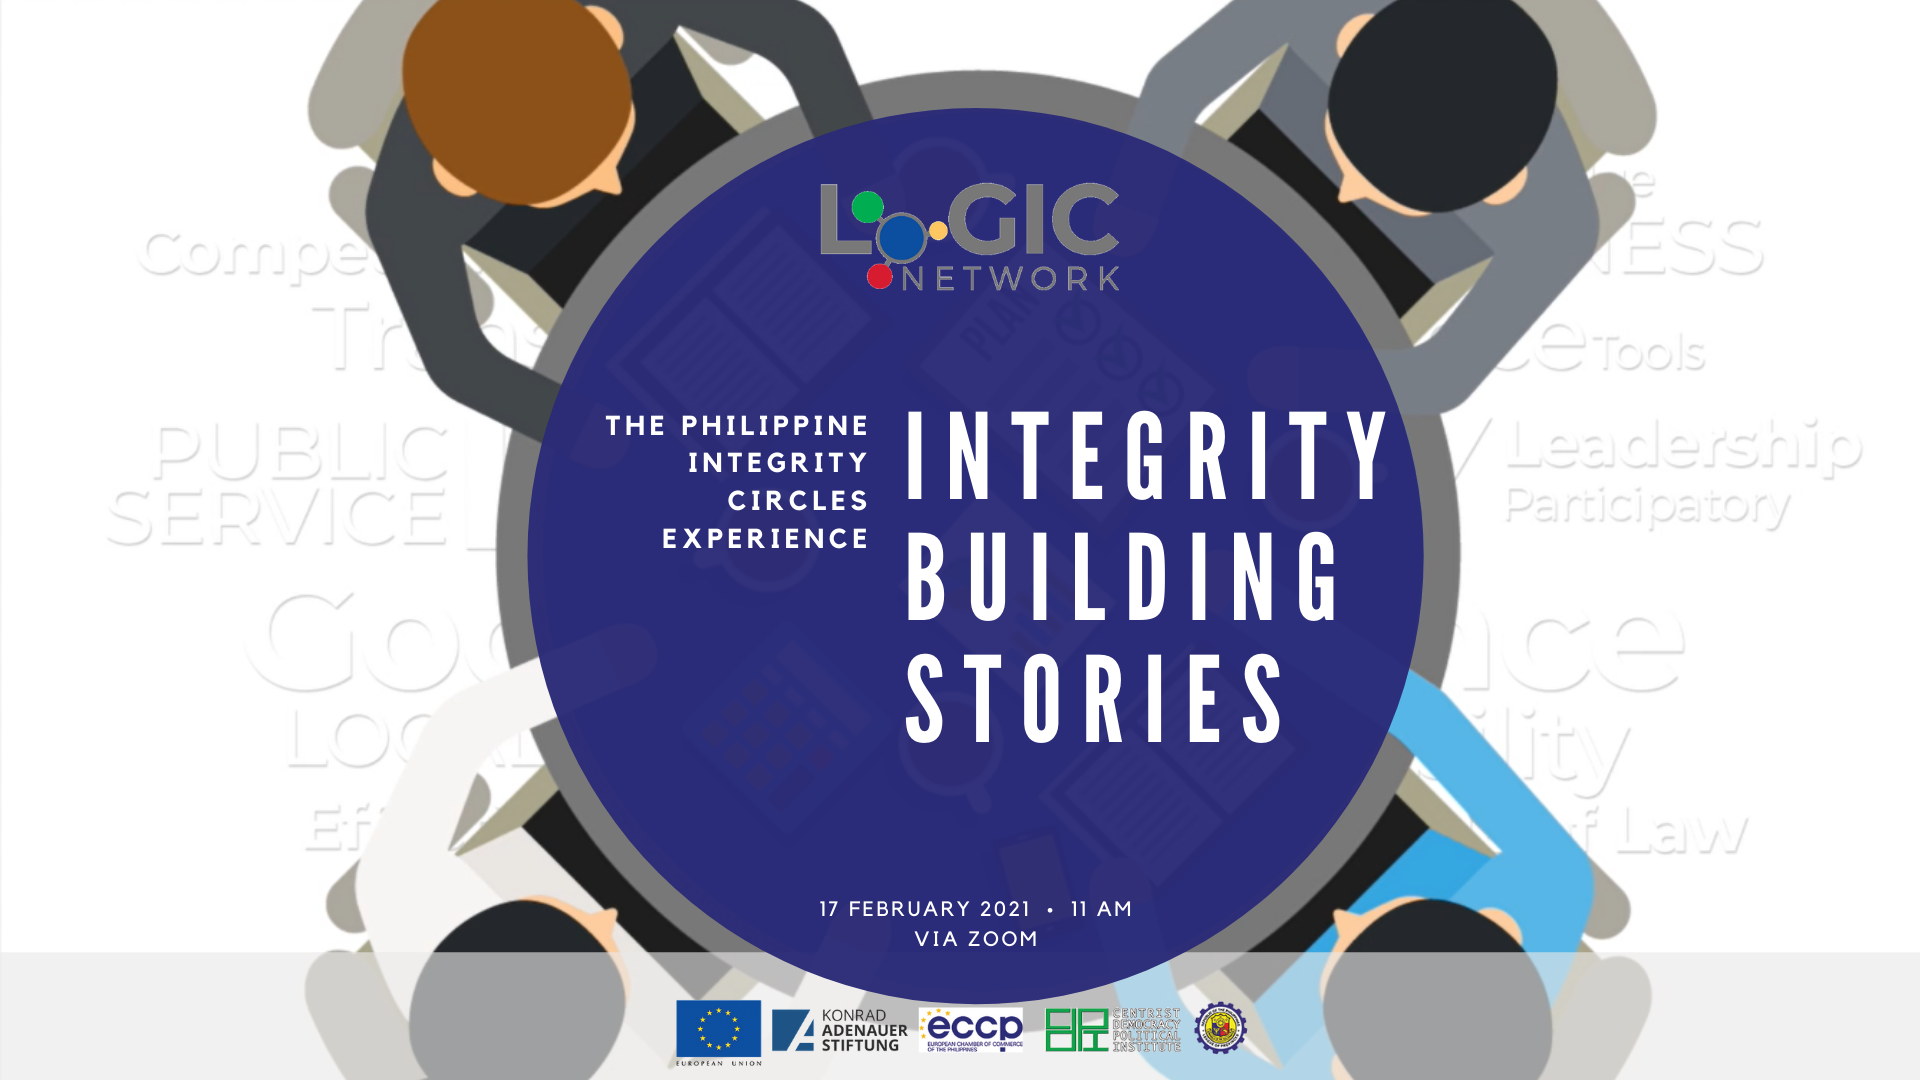 Integrity Building Stories - The Philippine Integrity Circles Experience